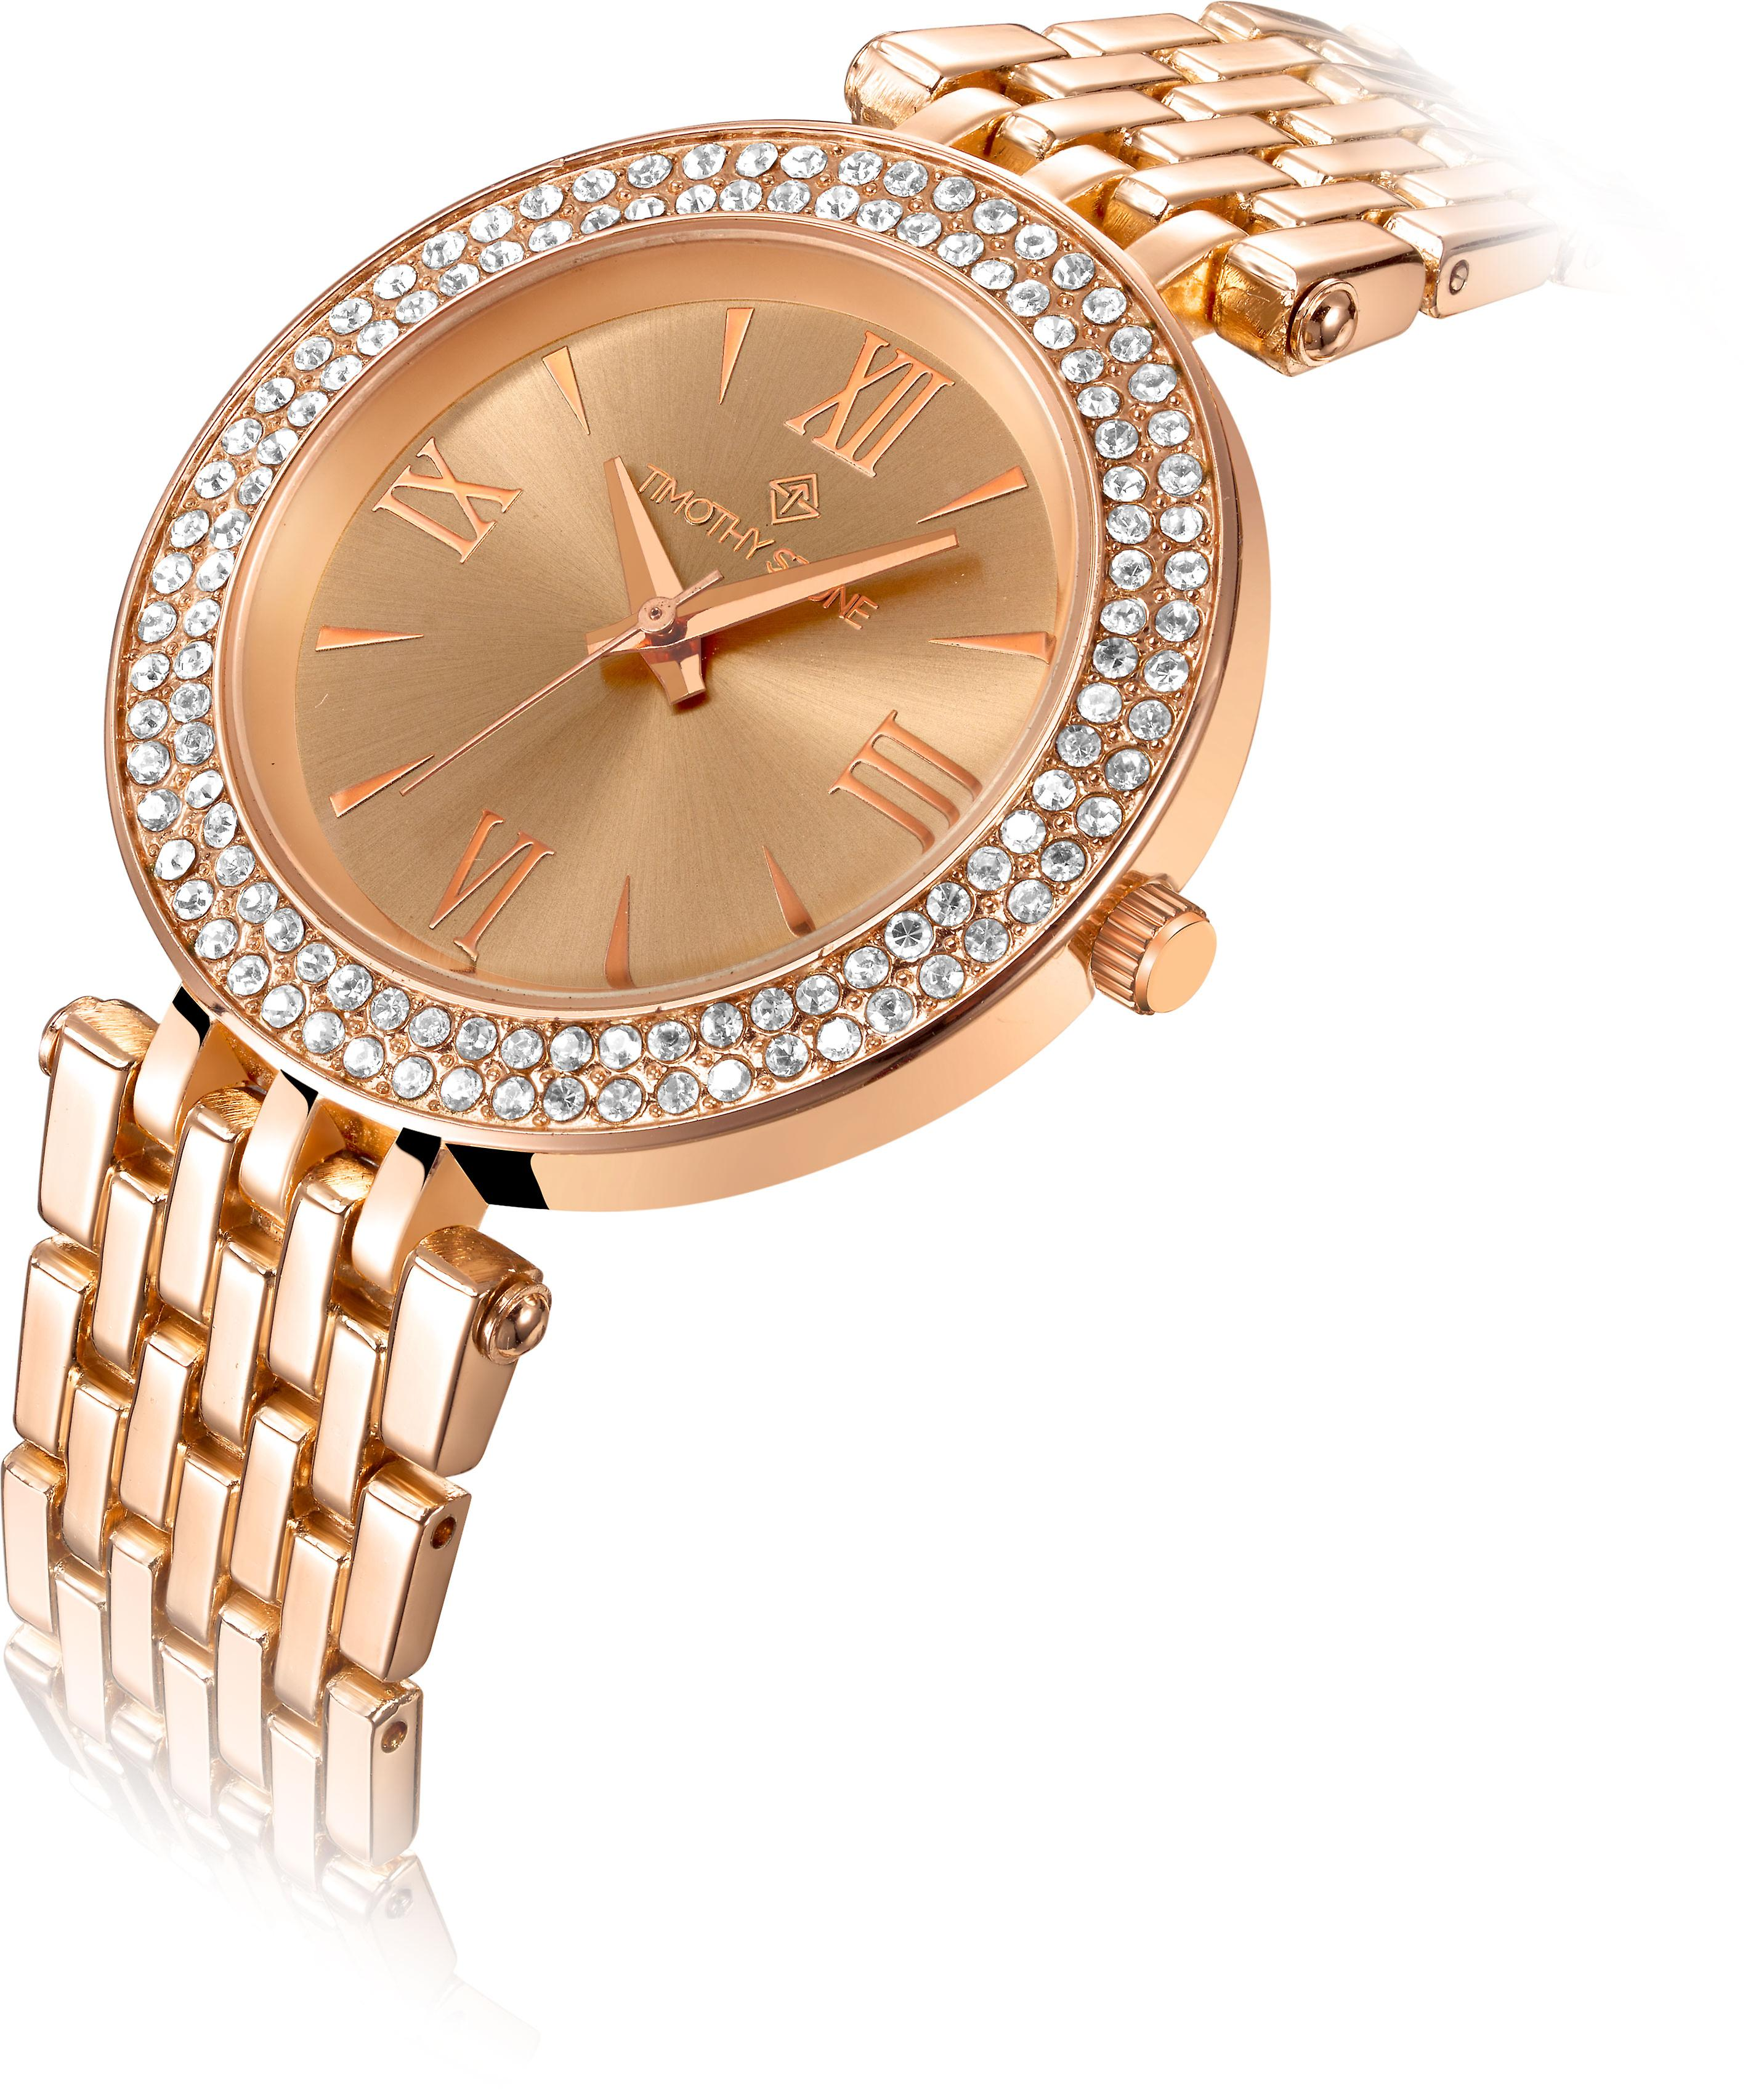 Timothy Stone Watches for Women Rose Gold Tone Crystal-Accented